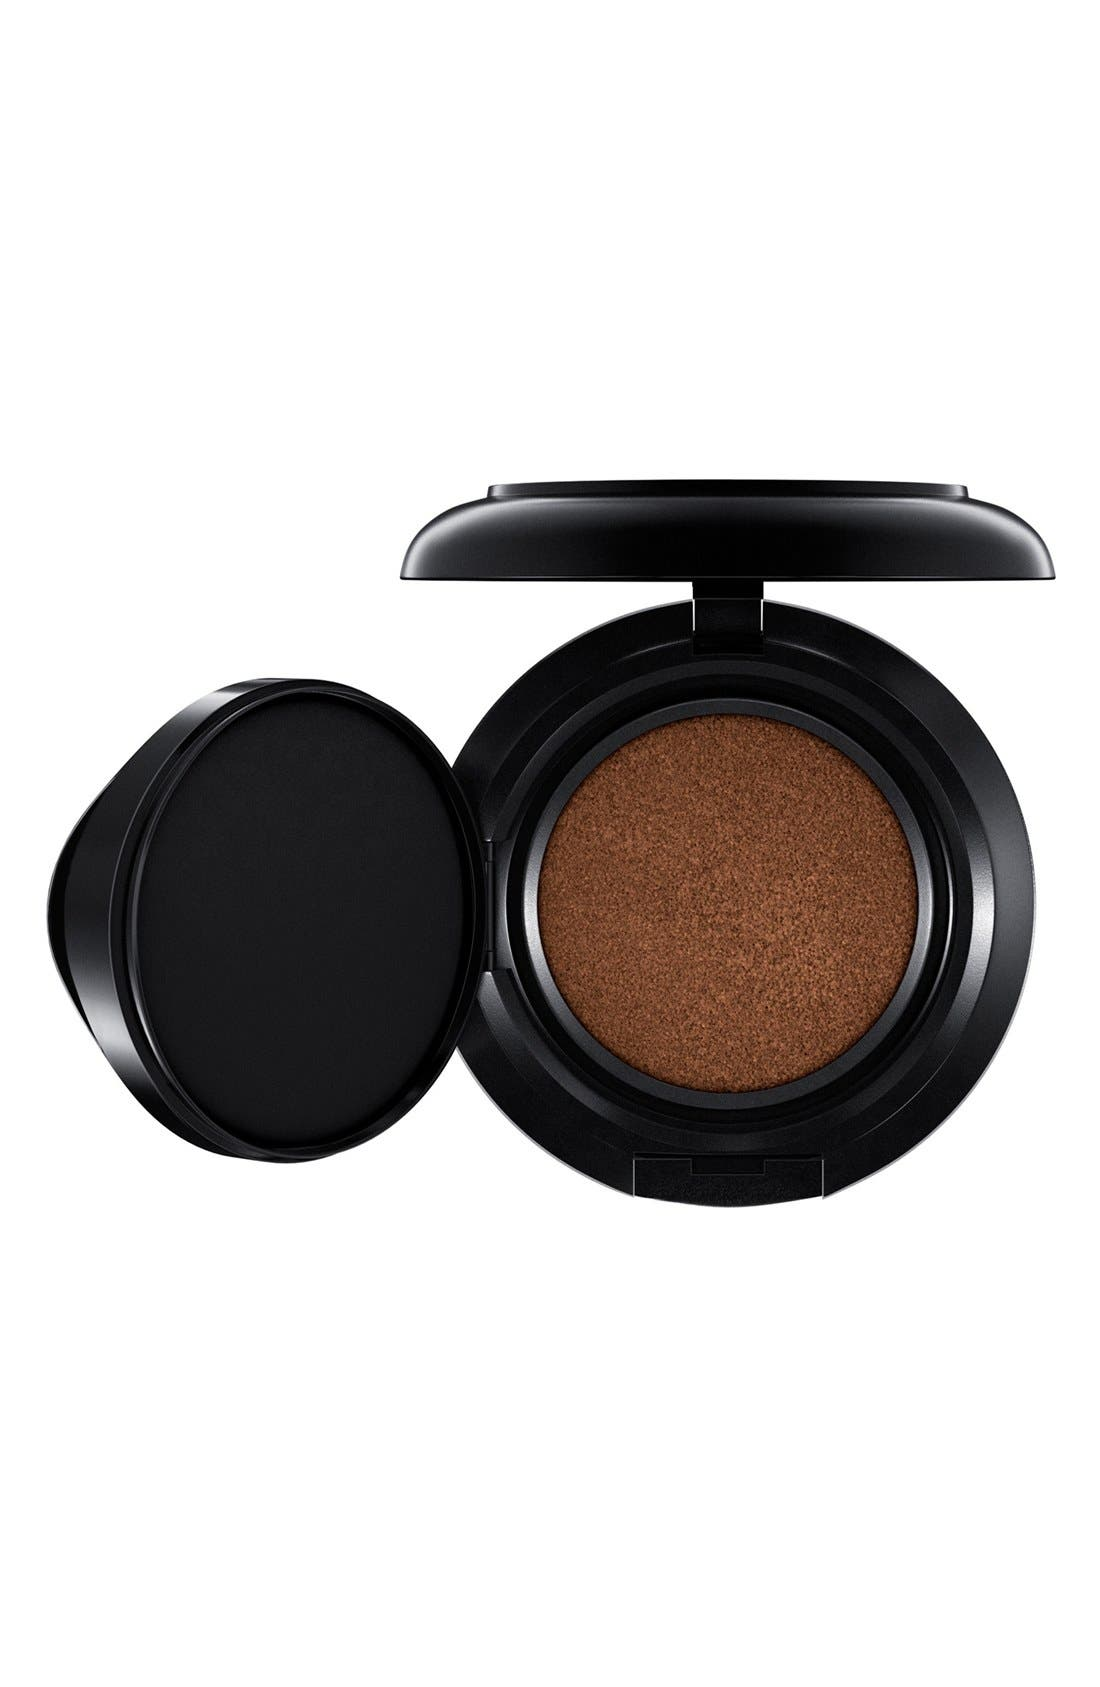 MAC COSMETICS MAC 'Matchmaster' Shade Intelligence Compact Foundation, Main, color, 261